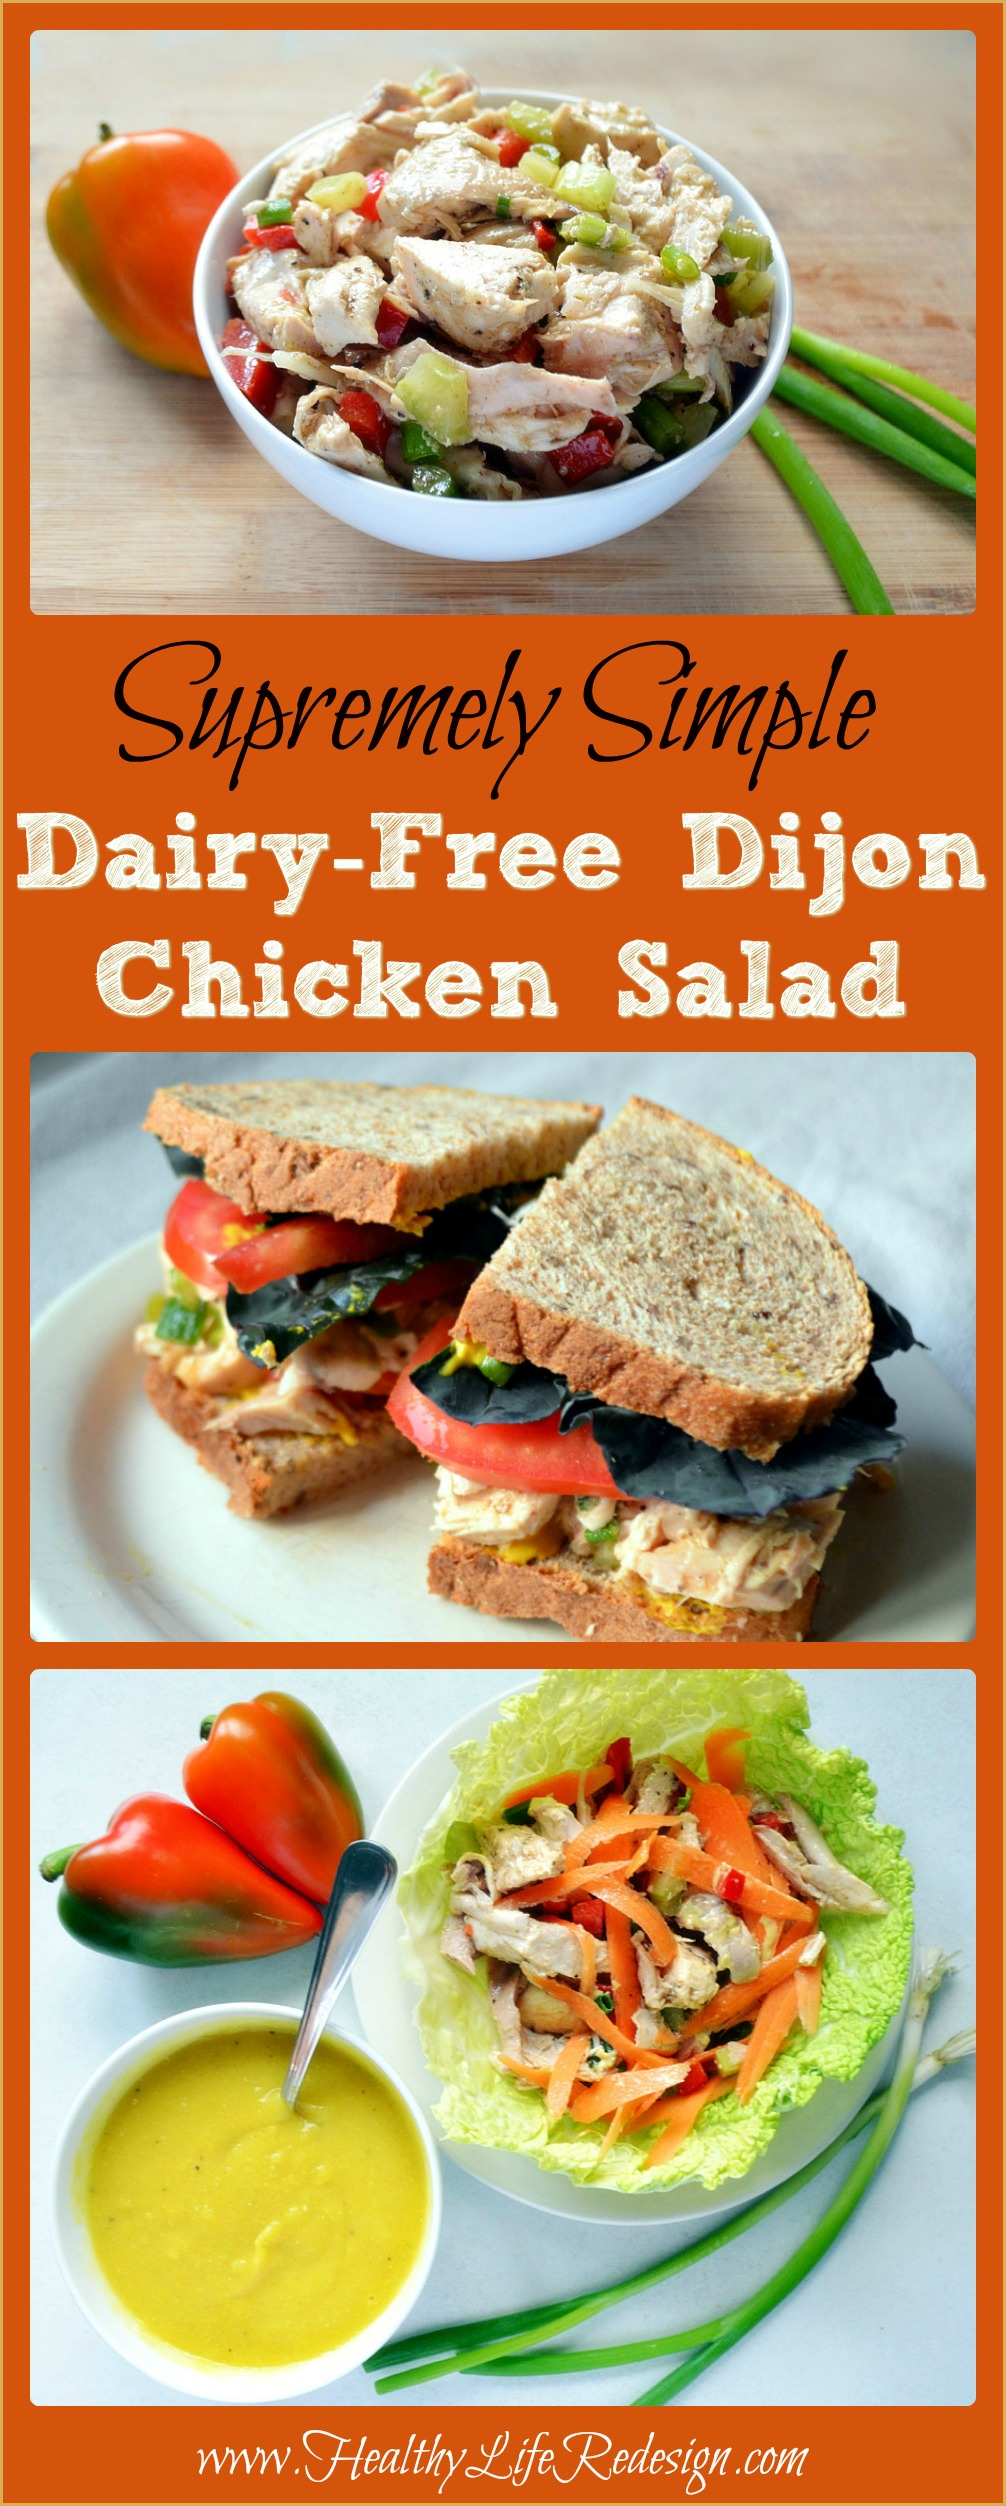 This Simple Dairy-free Dijon Chicken Salad makes for a healthy and delicious lunch or dinner! One easy recipe provides 4 ways to enjoy it!